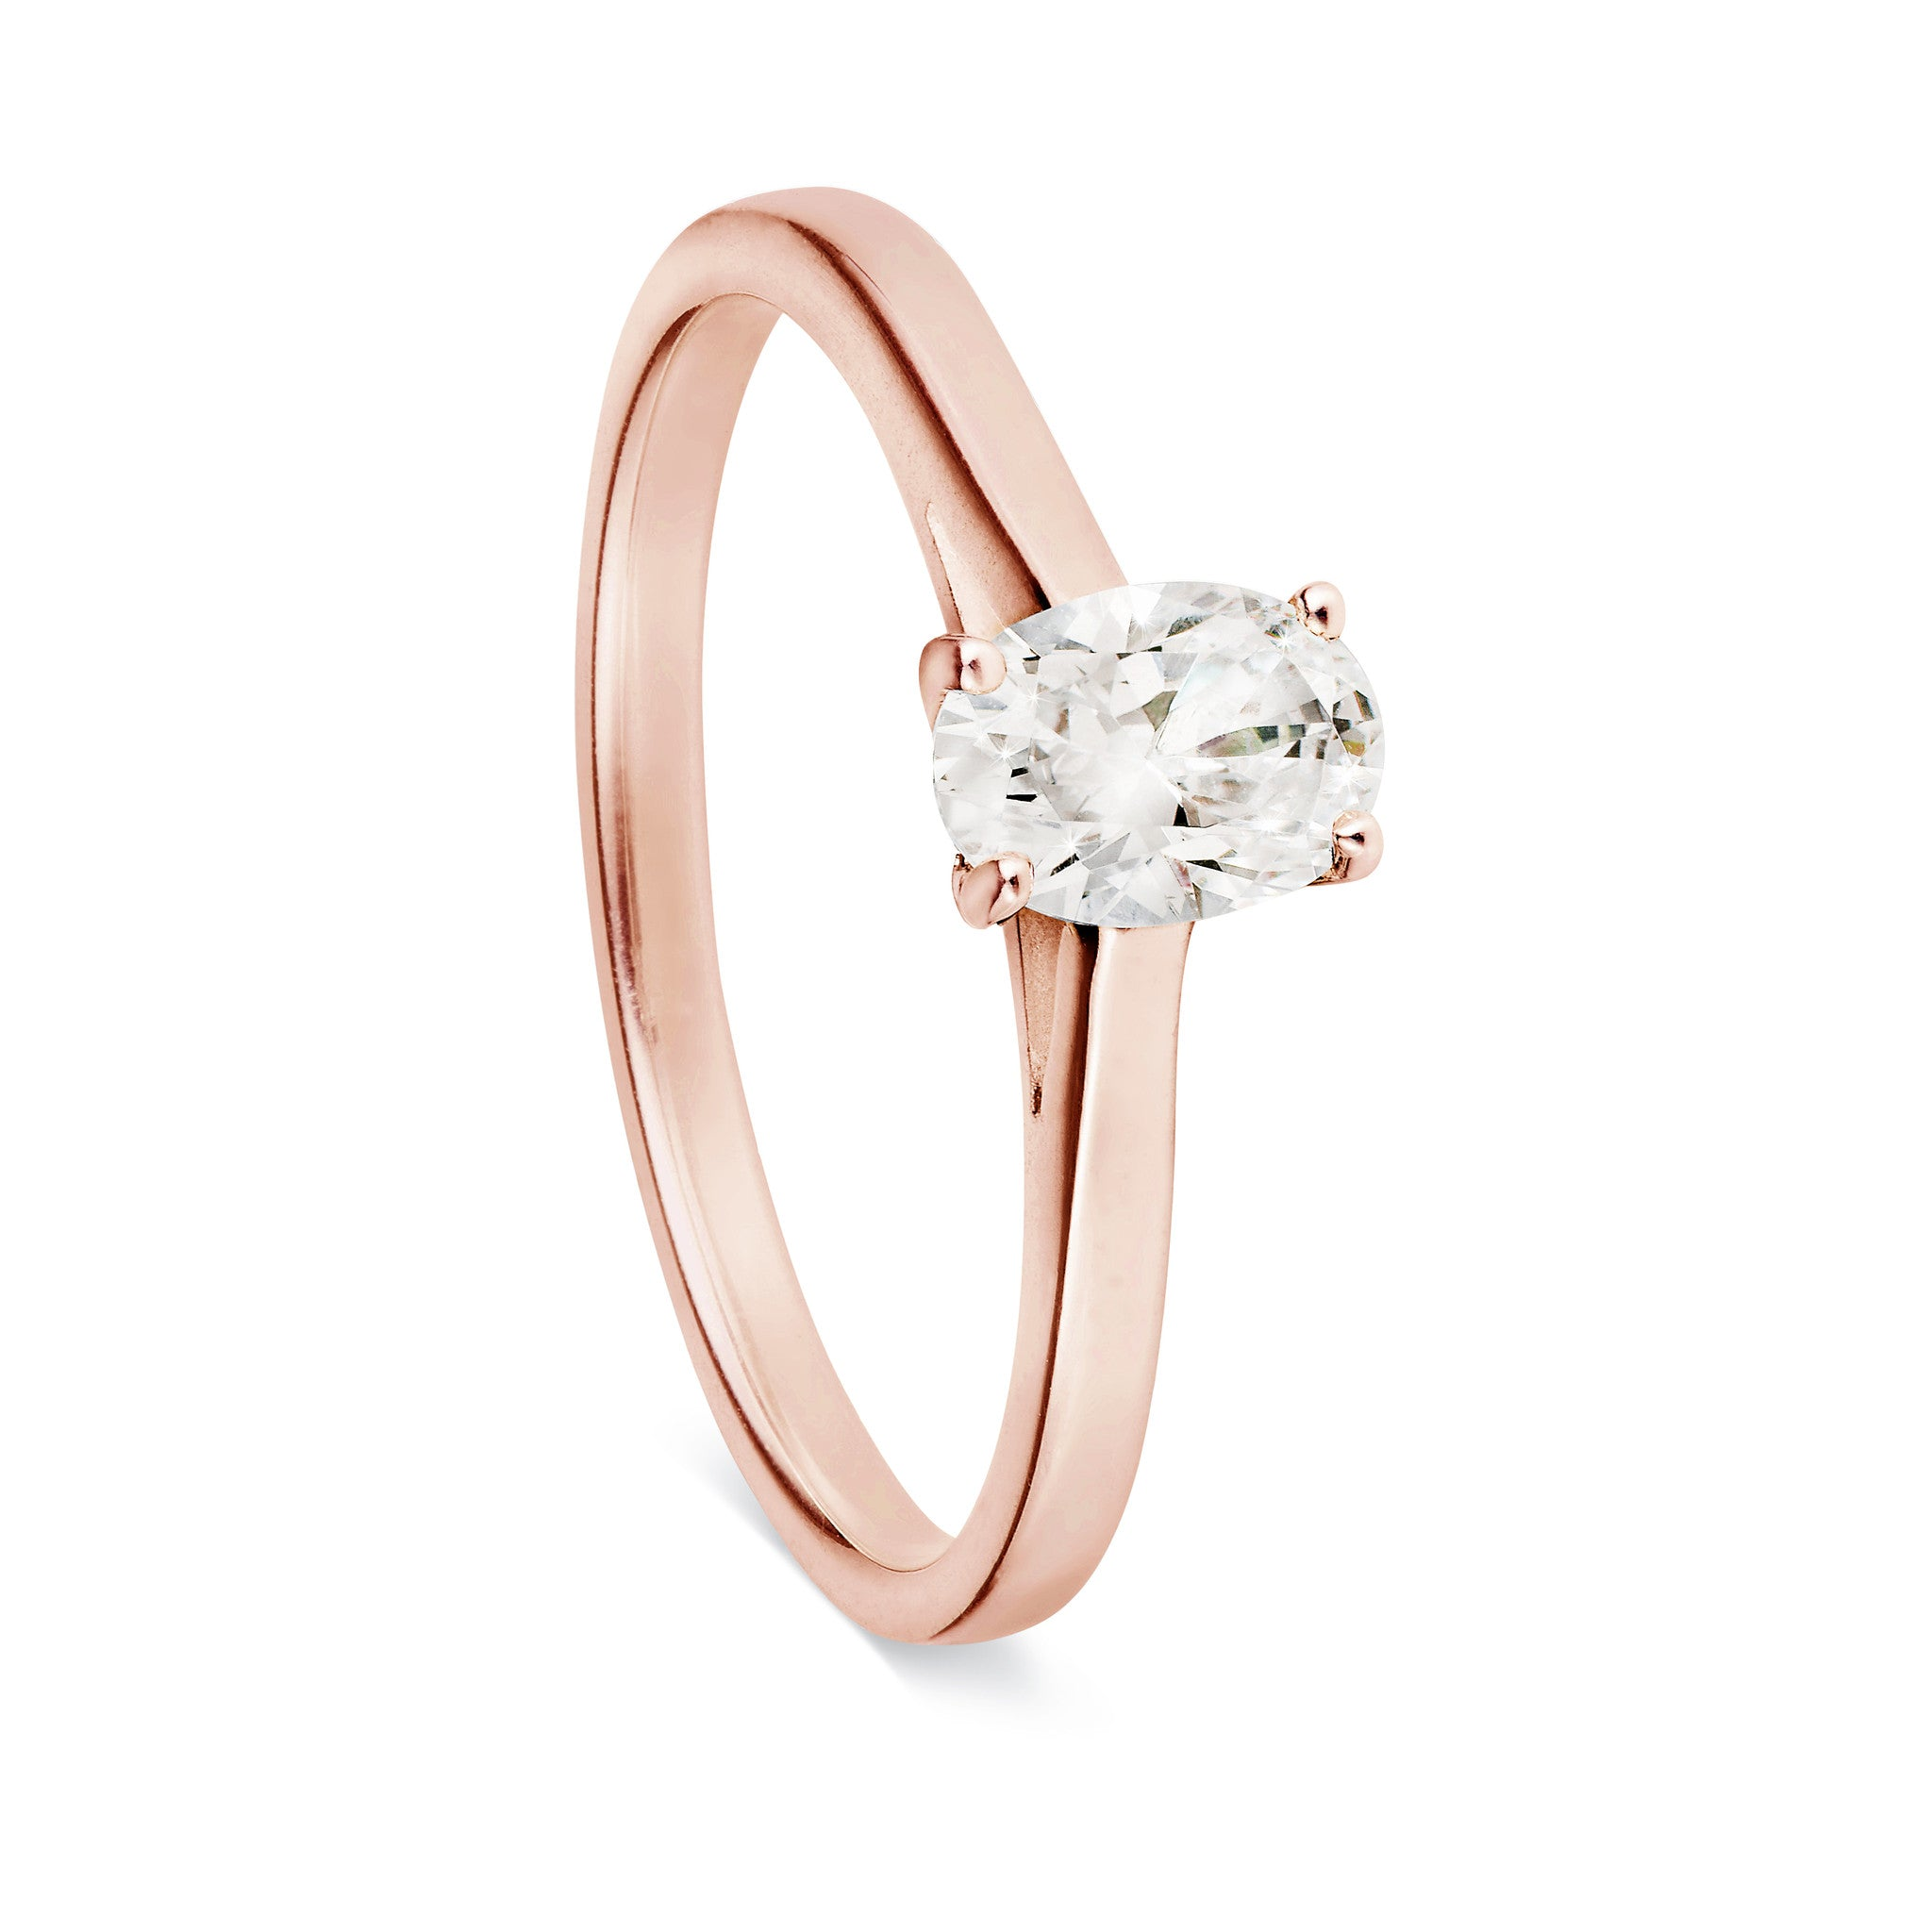 Oval Cut Solitaire Ring-Rings-London Rocks Jewellery